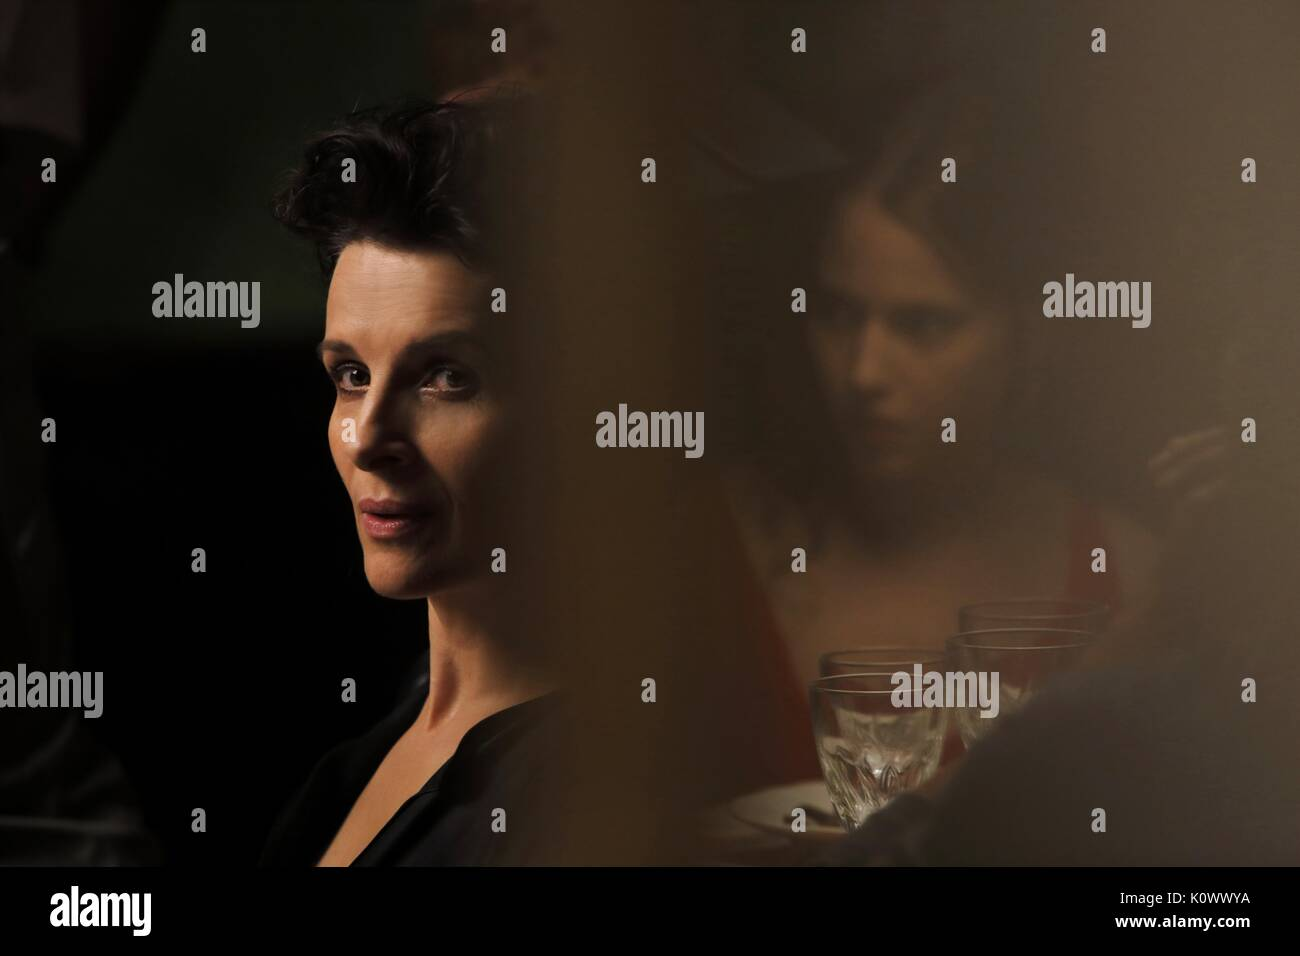 JULIETTE BINOCHE THE WAIT; L'ATTESA (2015) - Stock Image